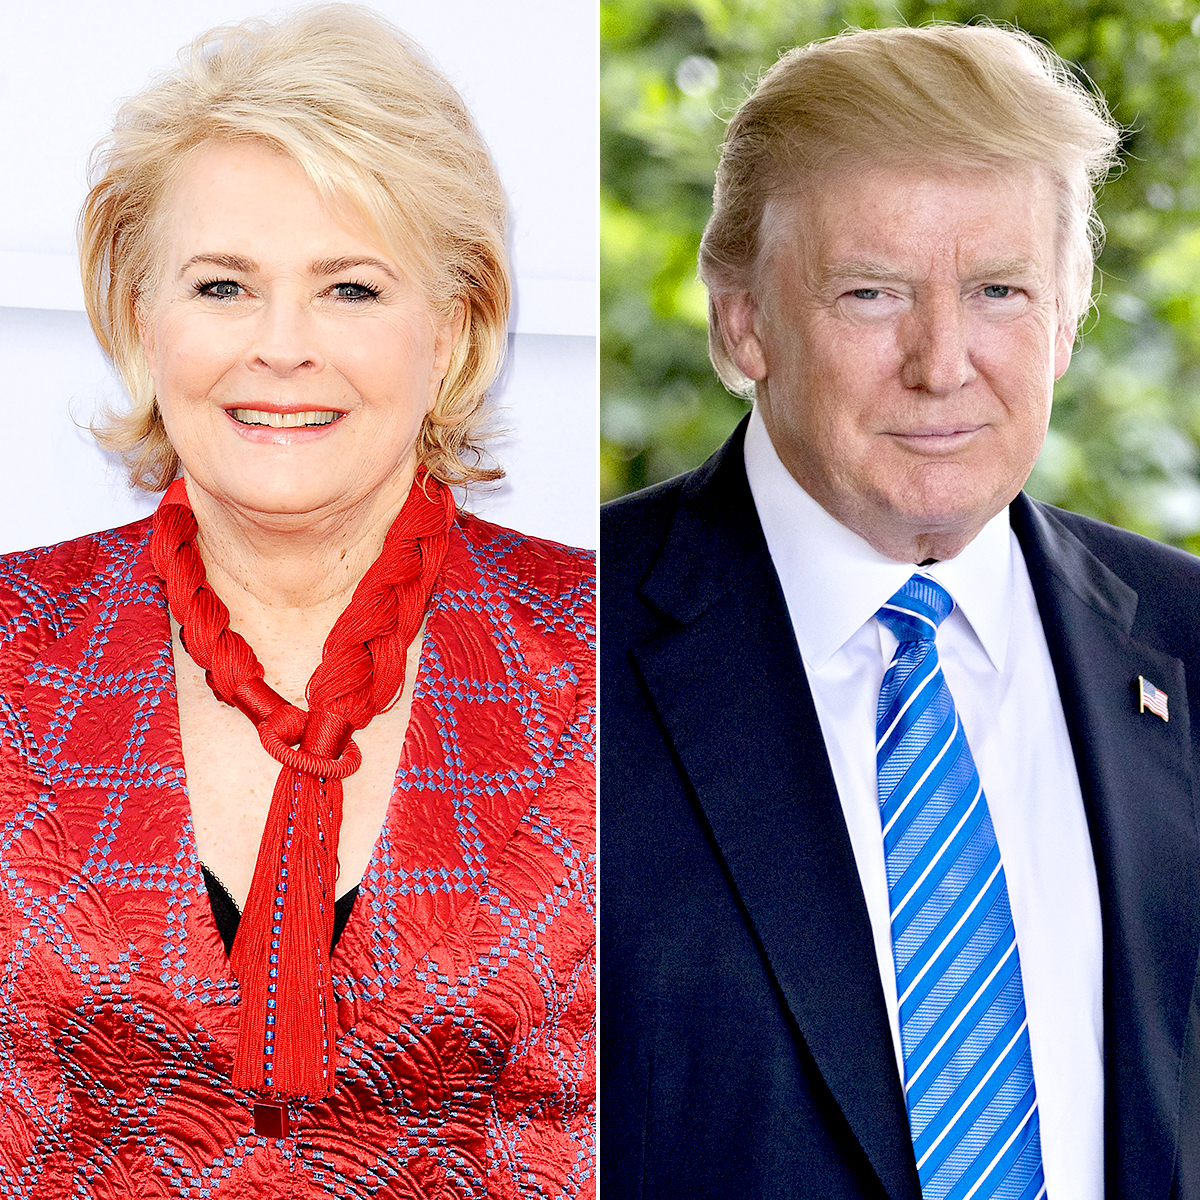 Part Douche Candice Bergen Recalls Date With Donald Trump In College